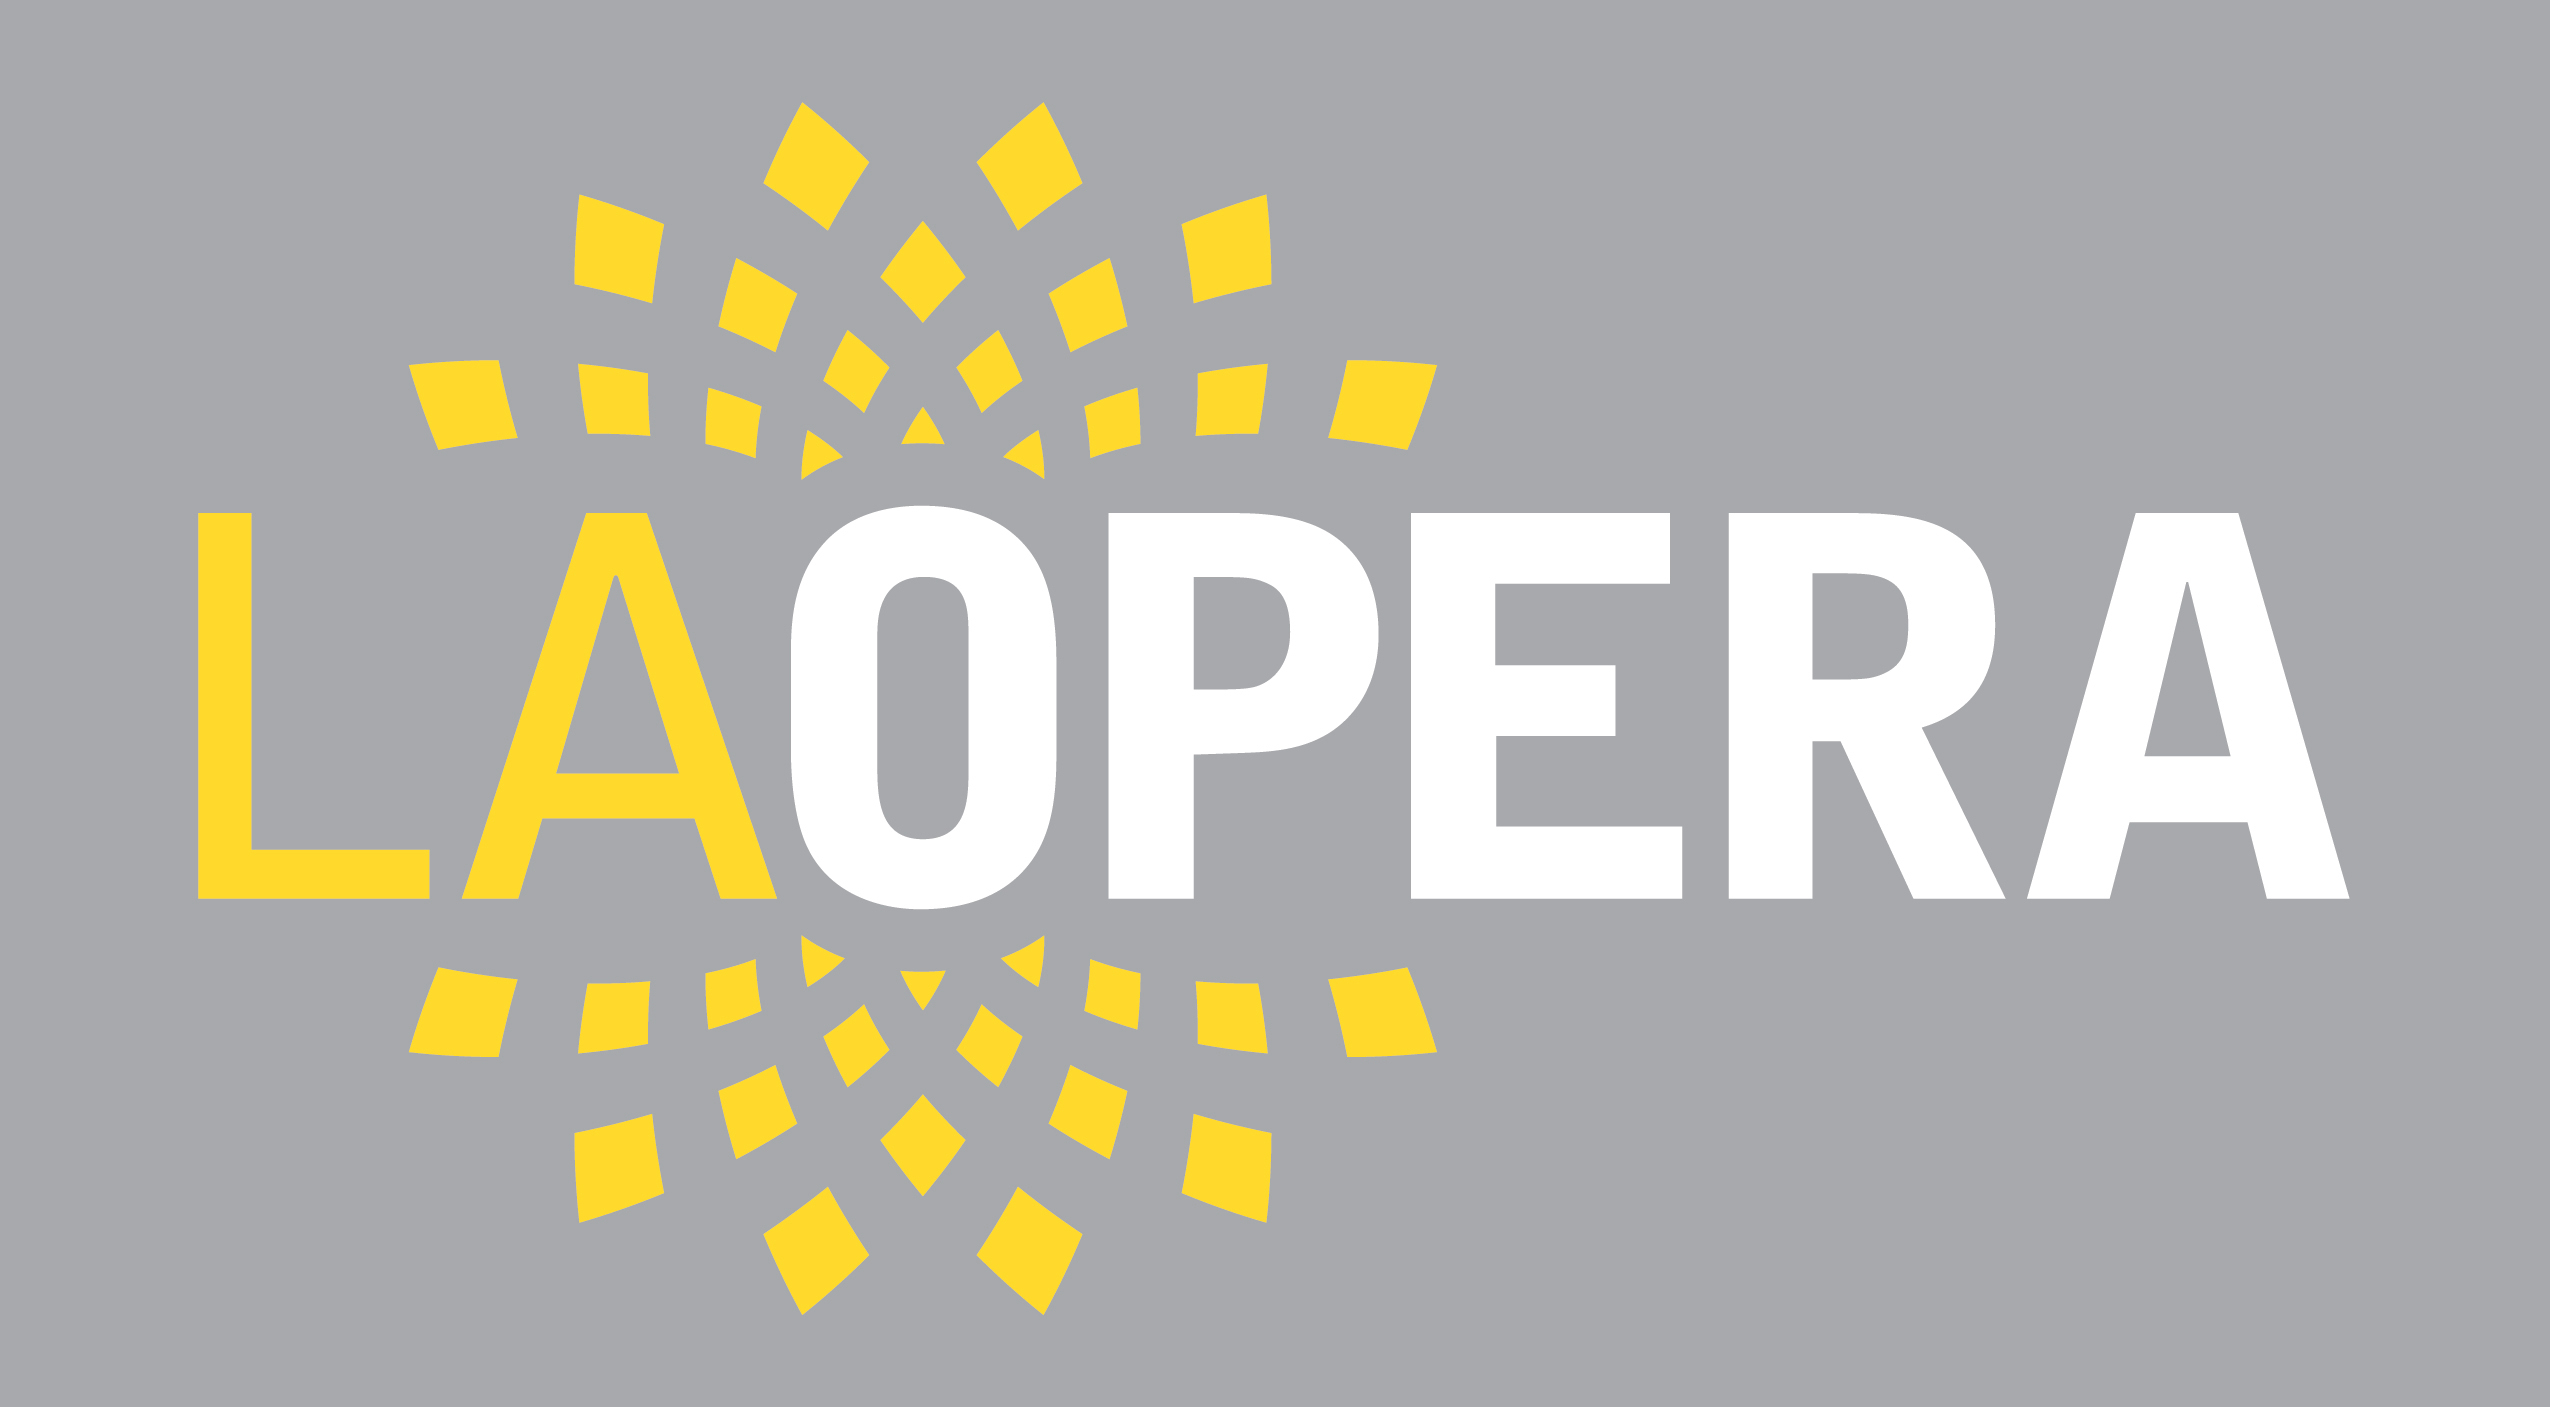 LOGO of LA OPERA Orchester working with OPAS